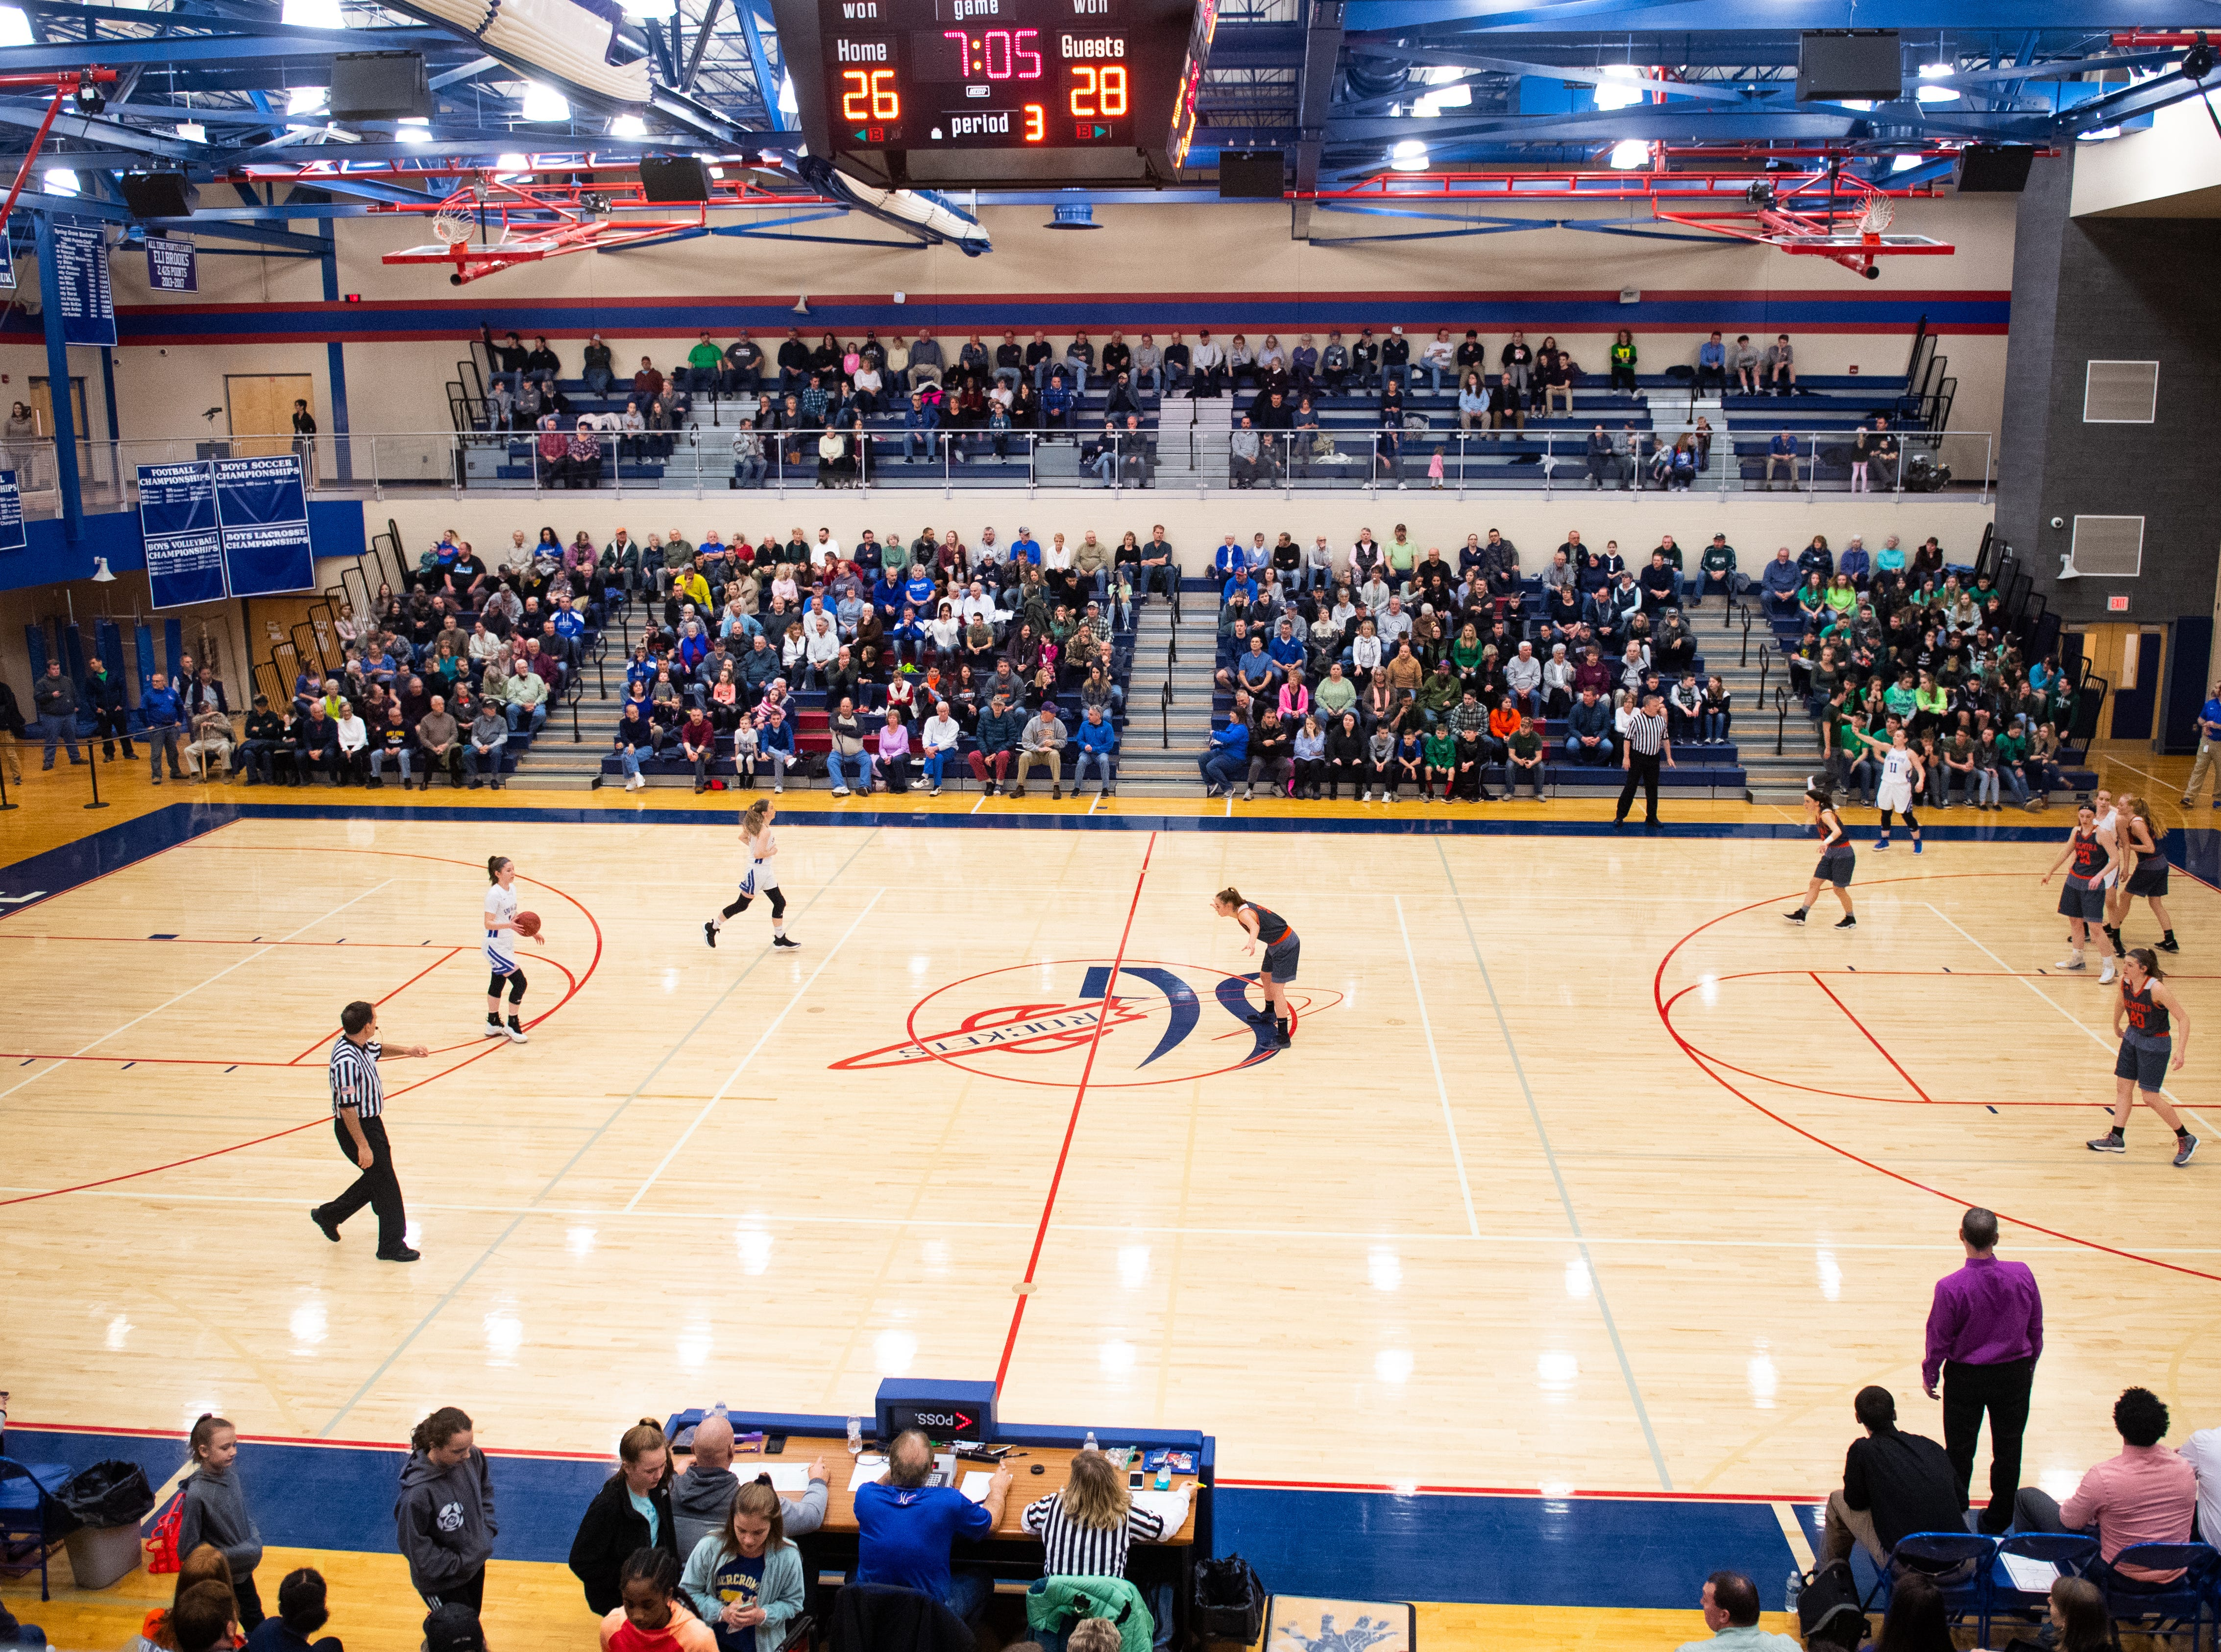 The gym is full during the District 3 Class 5A girls' basketball quarterfinal between Spring Grove and Palmyra, Friday, February 22, 2019 at Spring Grove Area High School. The Cougars defeated the Rockets 43 to 41.